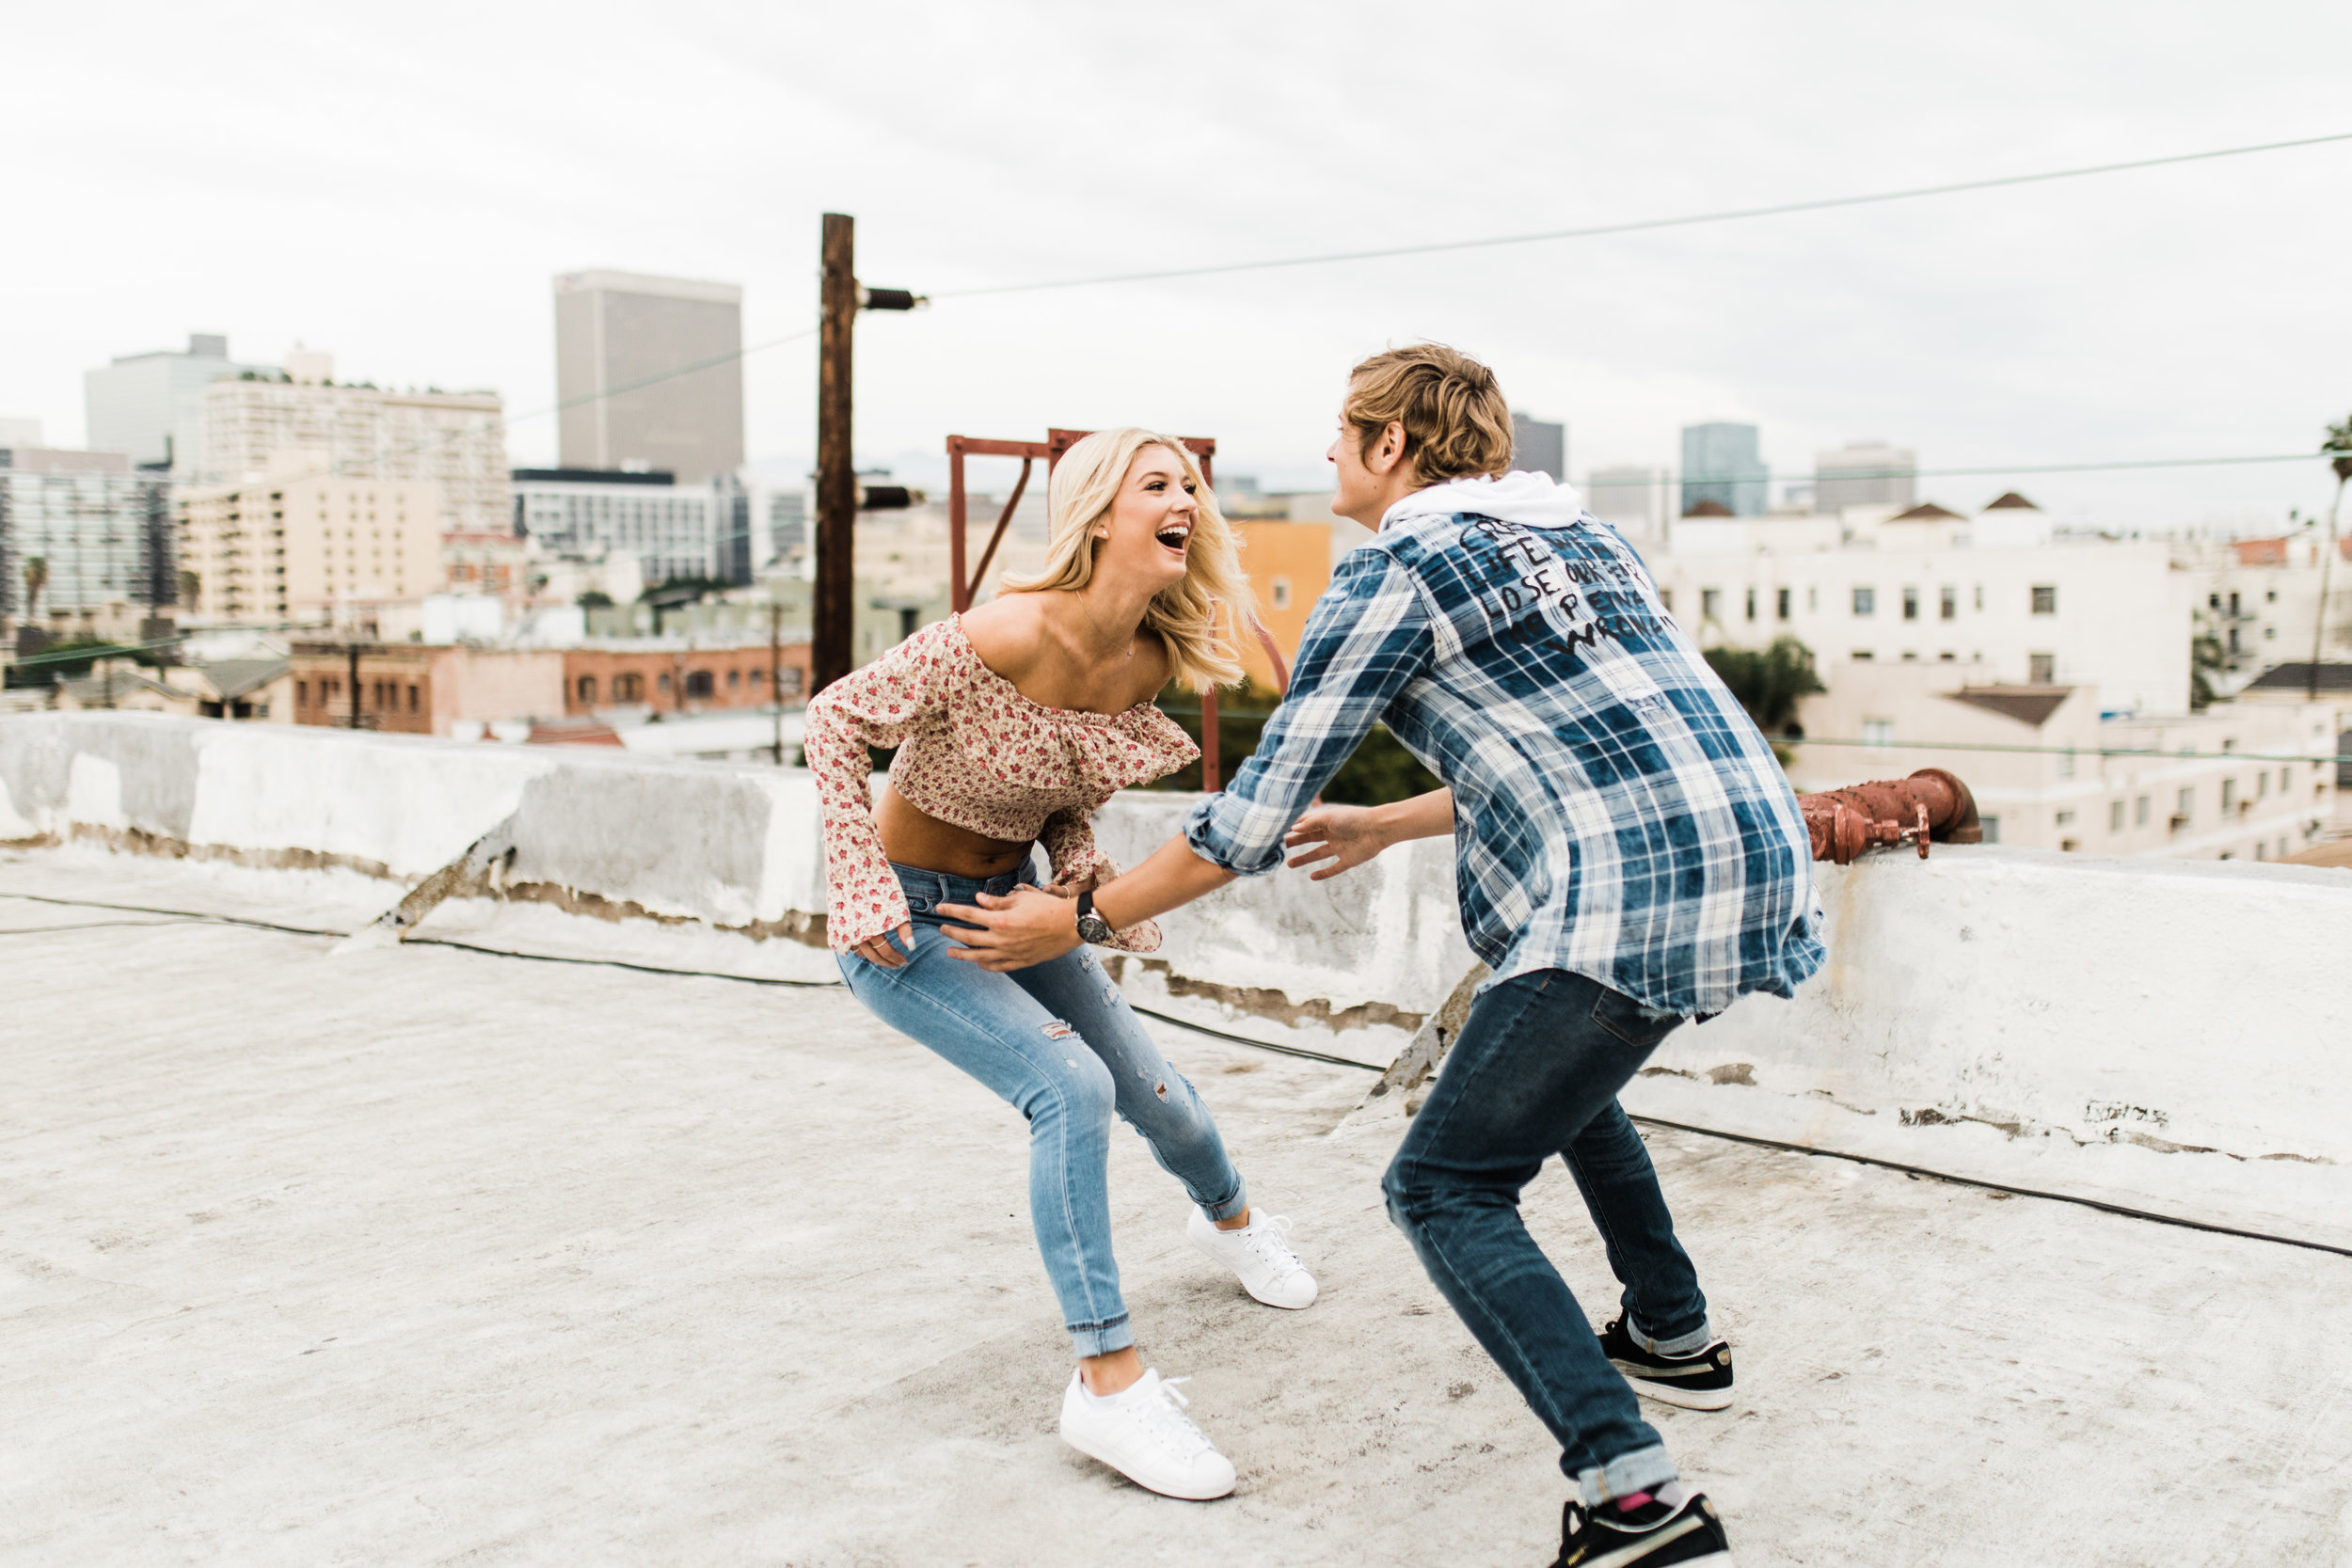 KylaLaufer&GusDeStJeor-Couples-Session-Los-Angeles-Rooftop-Sunset-Clarisse-Rae-Southern-California-Wedding-Photographer_10